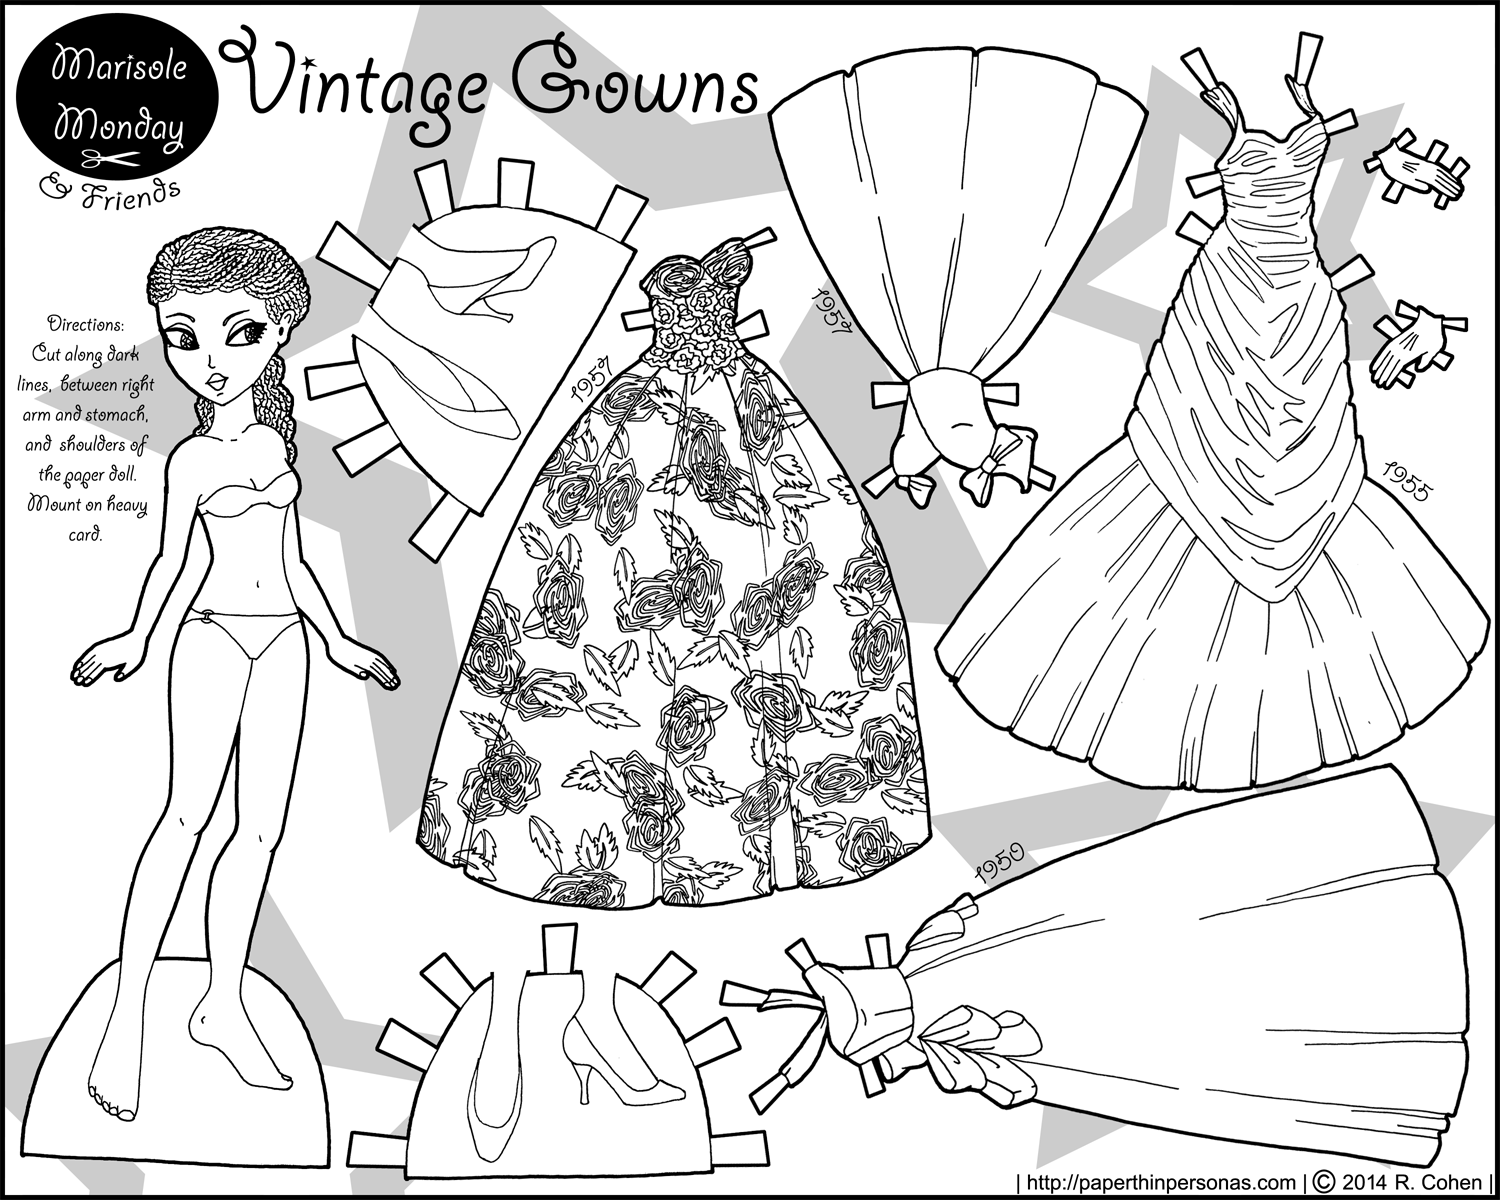 A black paper doll with 1950s vintage ballgowns to color- free to print from paperthinpersonas.com.